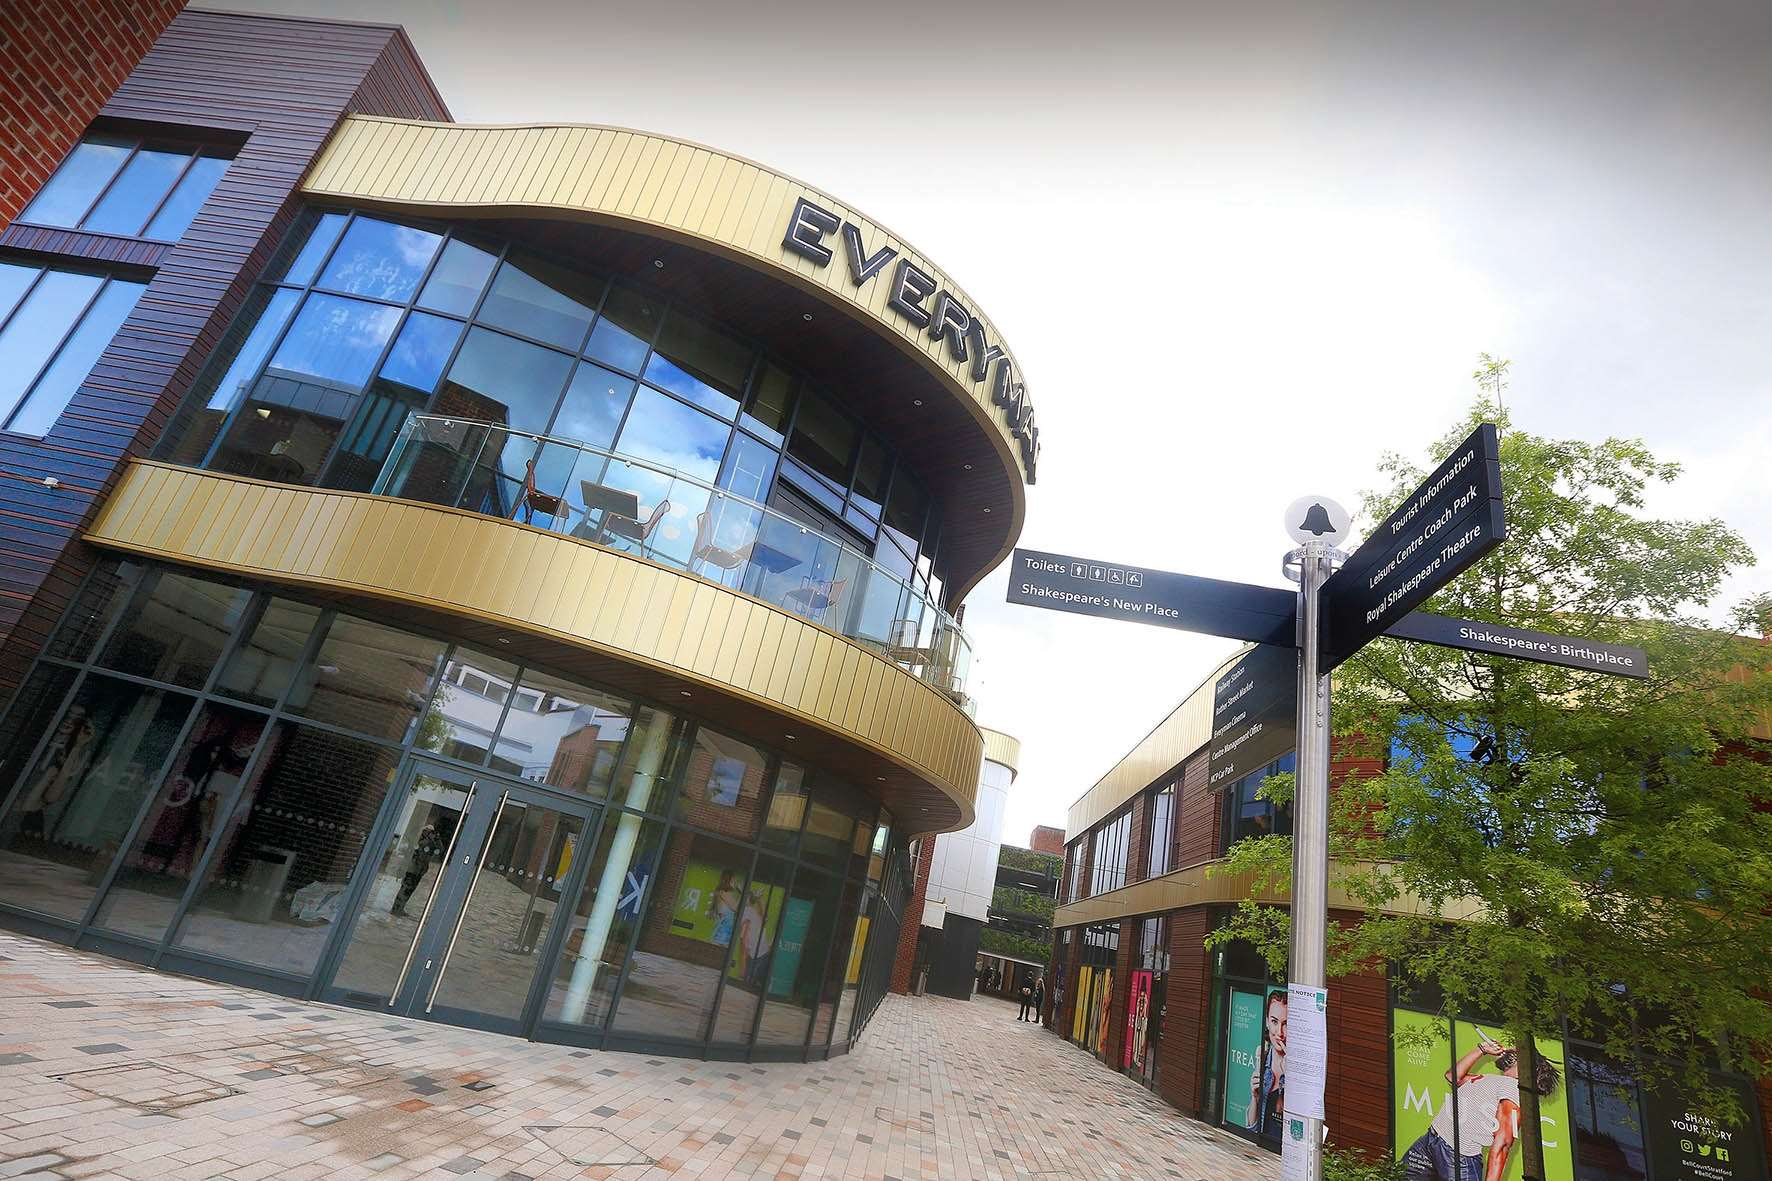 The Everyman cinema in Stratford-upon-Avon is to reopen on Friday. Photo: Mark Williamson